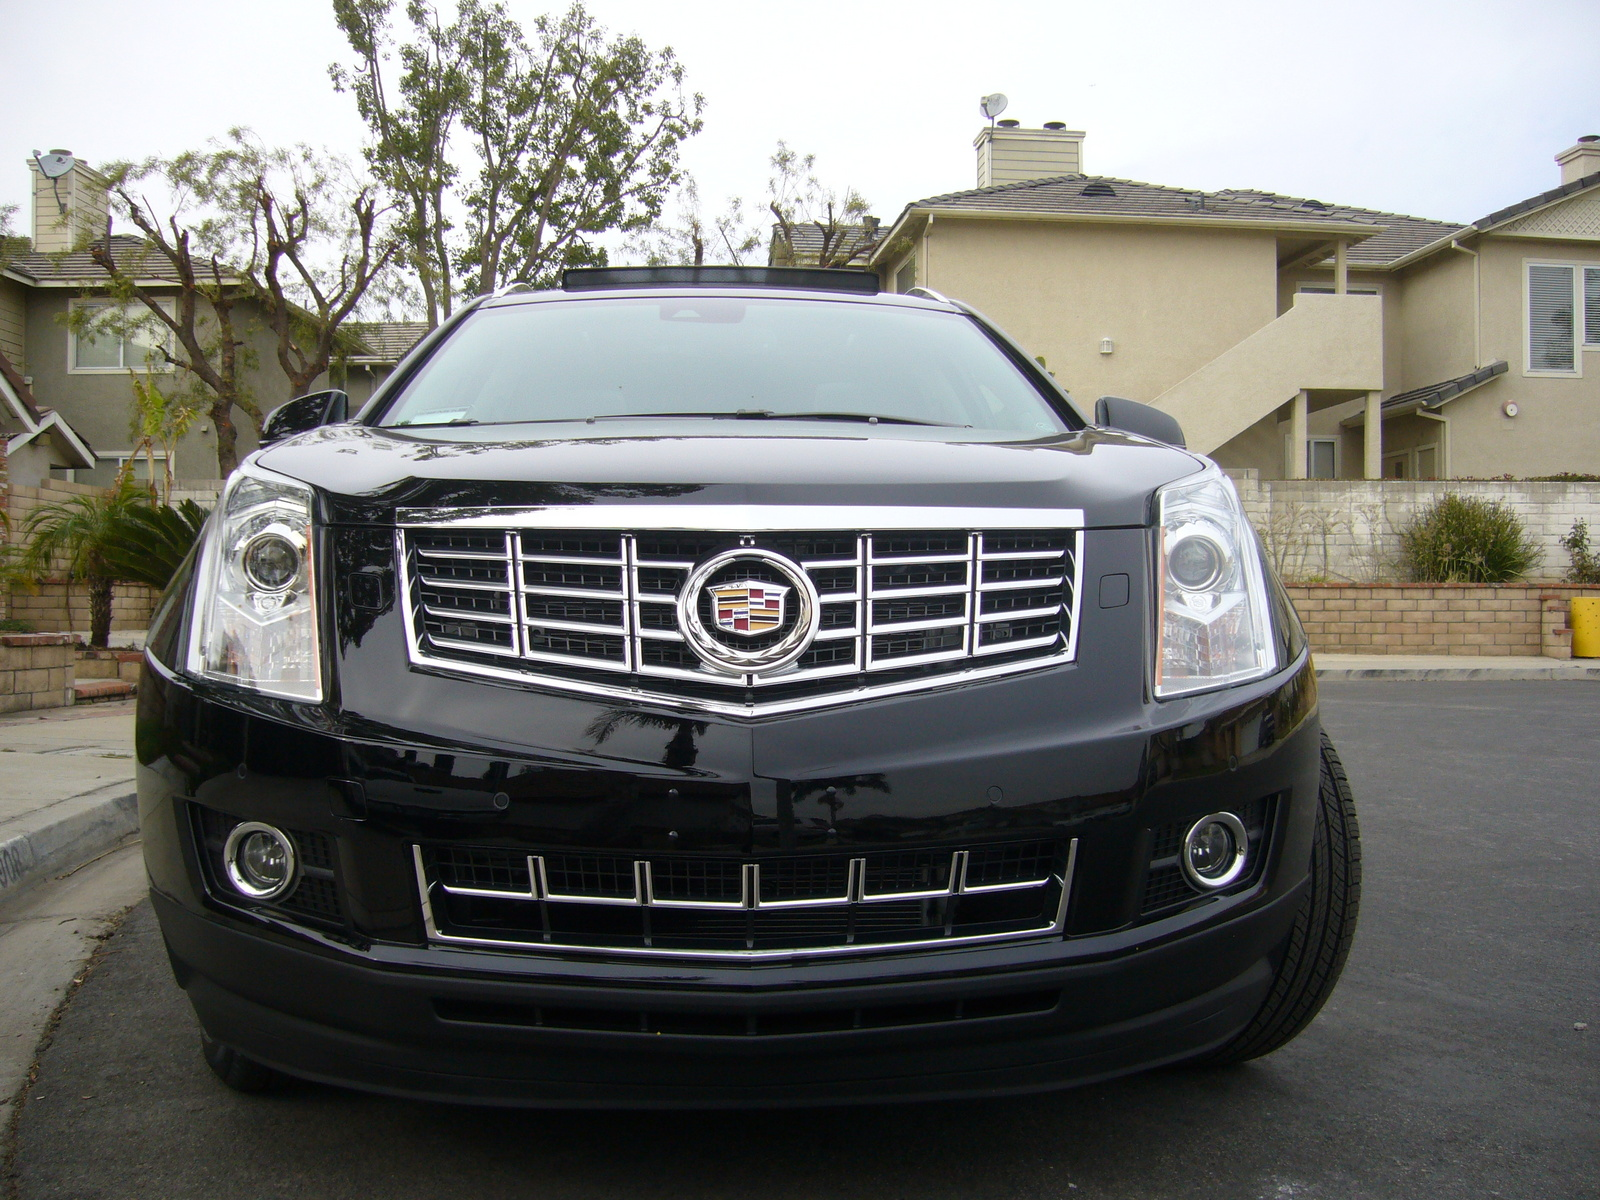 2014 cadillac srx pictures cargurus. Black Bedroom Furniture Sets. Home Design Ideas